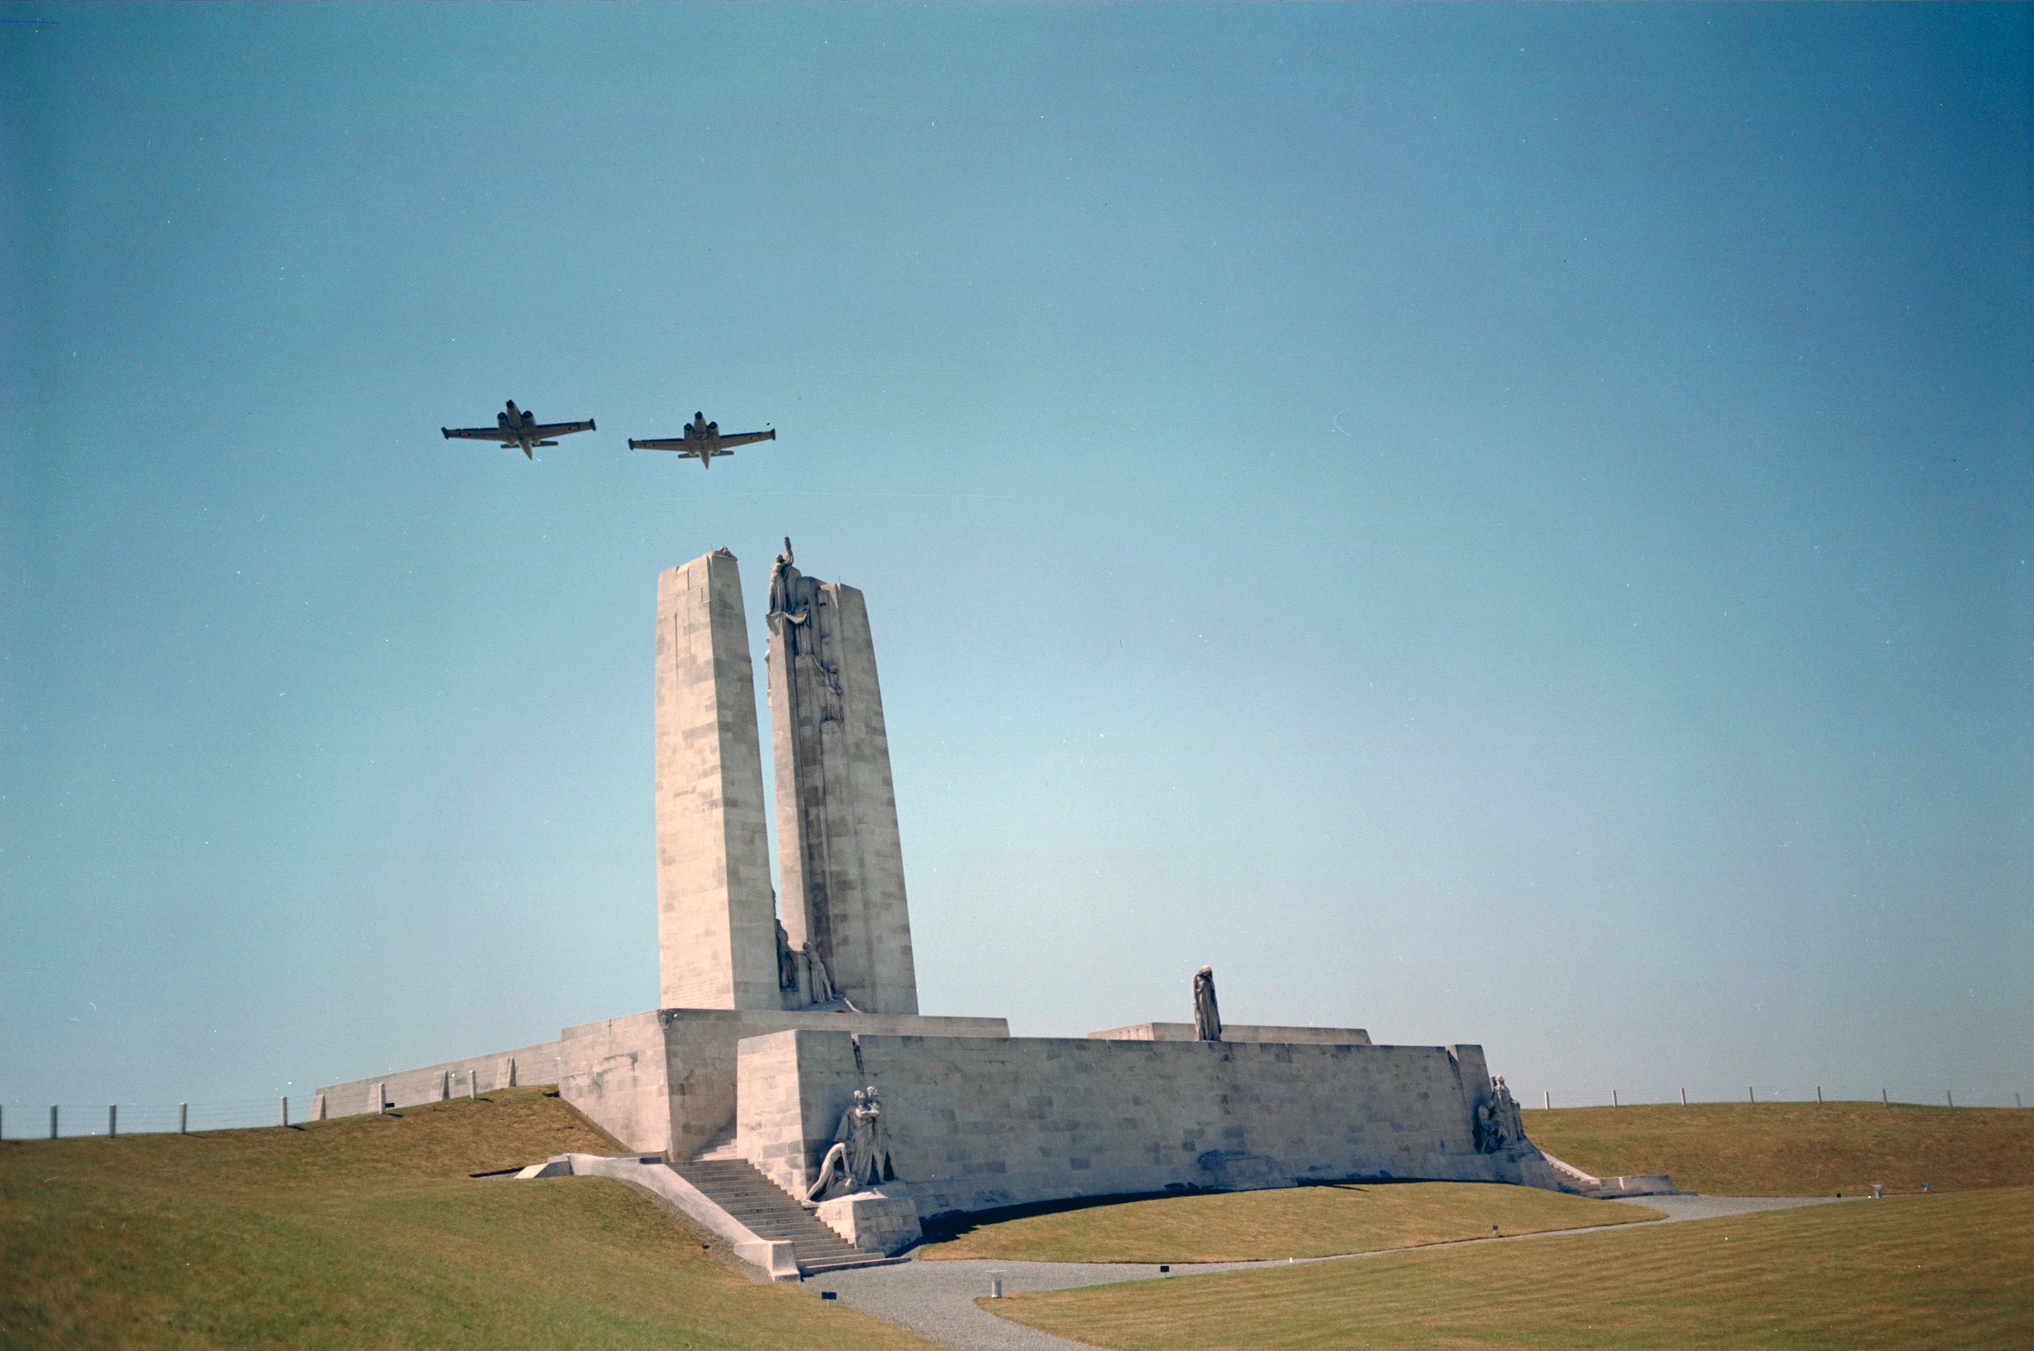 The Royal Flying Corps, which included many Canadian flyers, carried out aerial reconnaissance and photography of enemy positions leading up to the Battle of Vimy Ridge and provided artillery spotting before and during the battle. Several Canadian airmen were killed in the days before and after the battle. In this undated file photo, CF-100 Canucks fly over the Canadian War Memorial at Vimy Ridge in France. PHOTO: DND Archives,PCN-1392